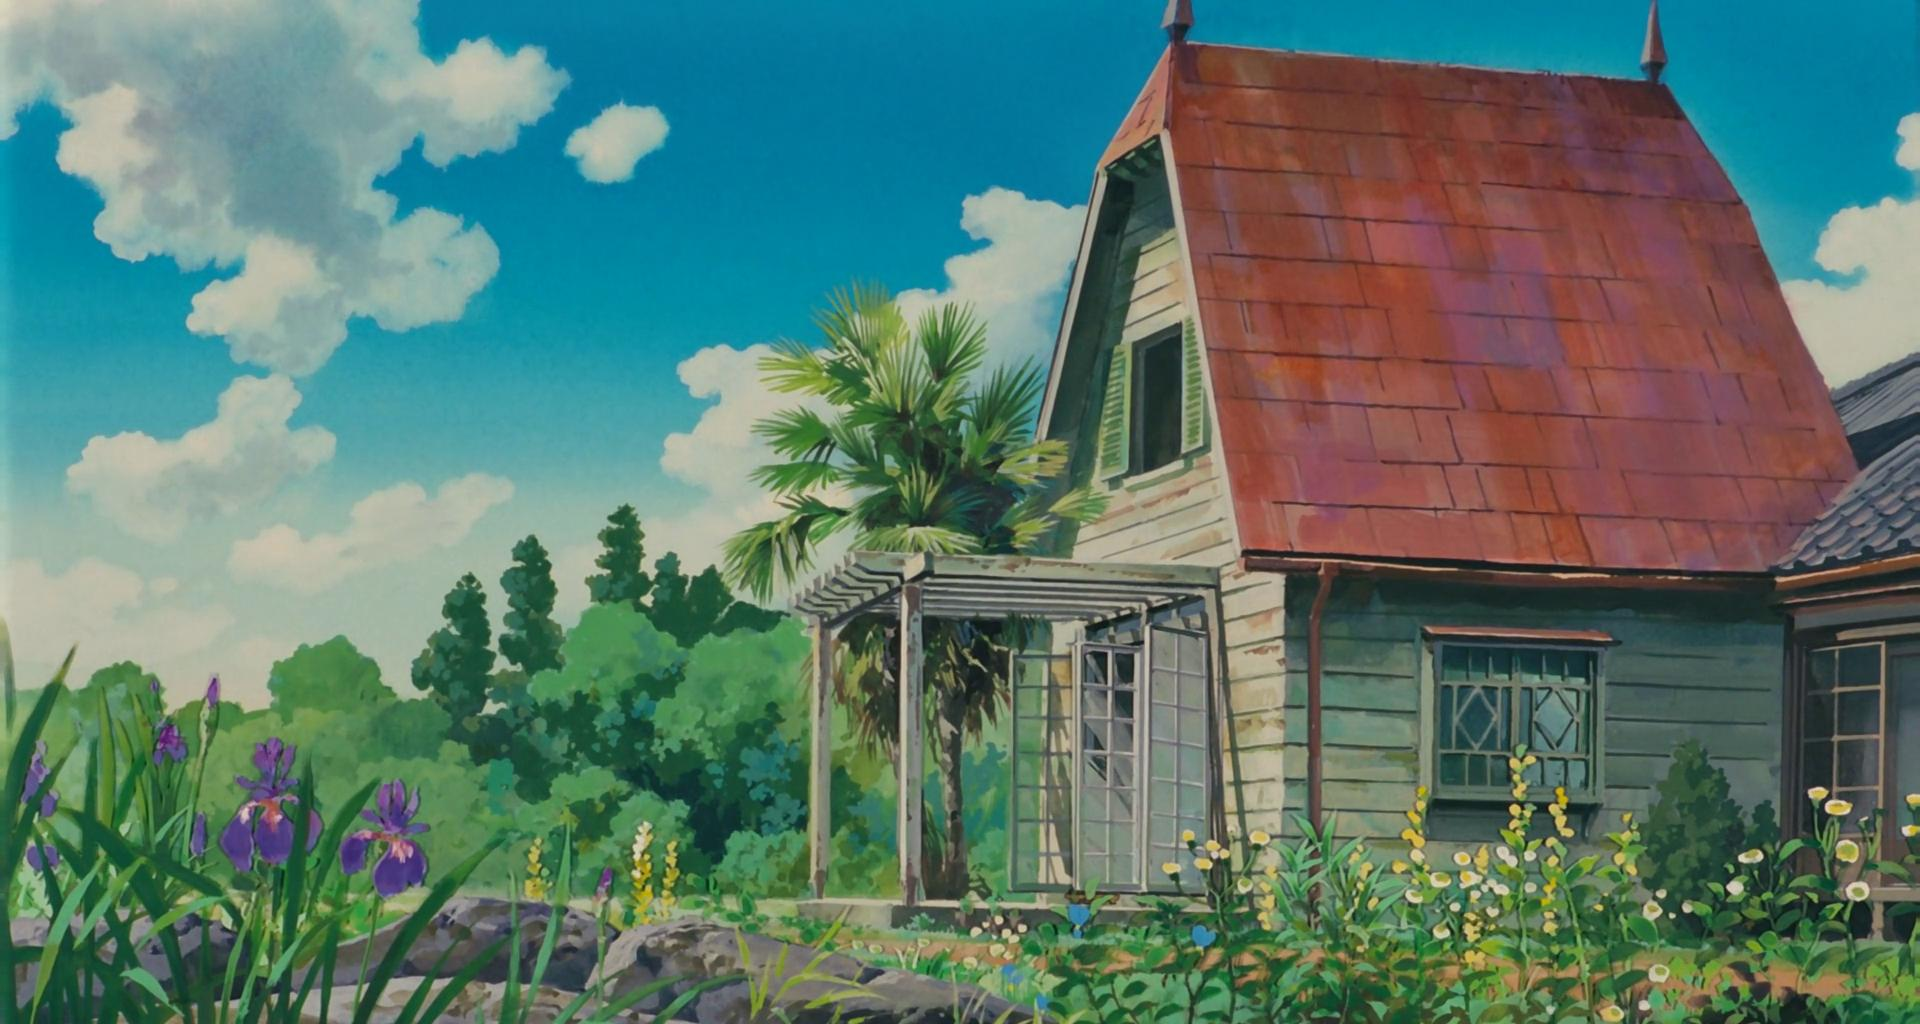 studio ghibli wallpapers Wallpaper studio ghibli desktop background 1920x1024